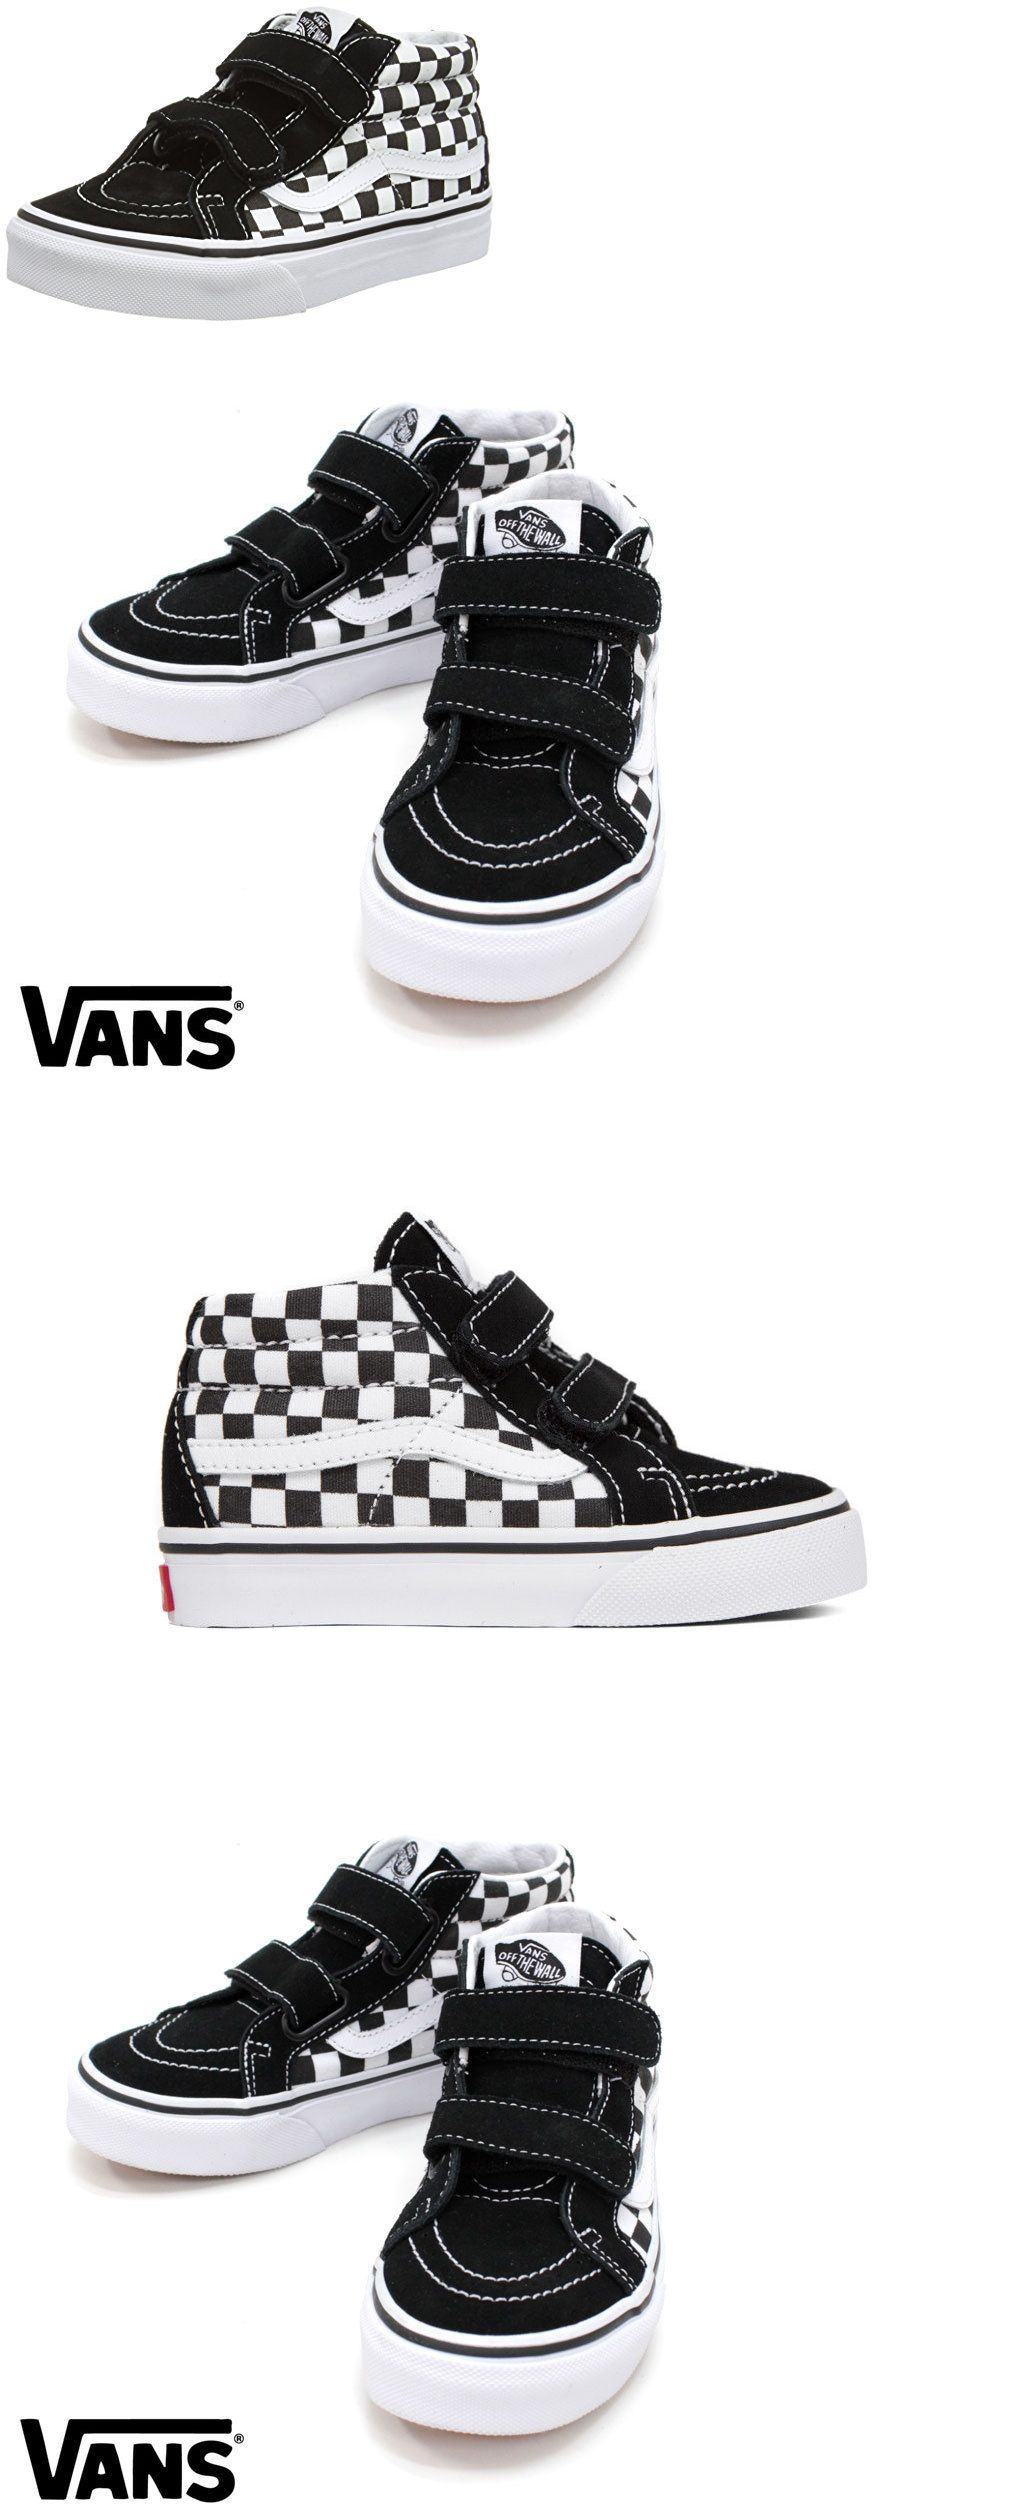 Baby Shoes Vans Sk8 Mid Reissue Checkers Board Black White